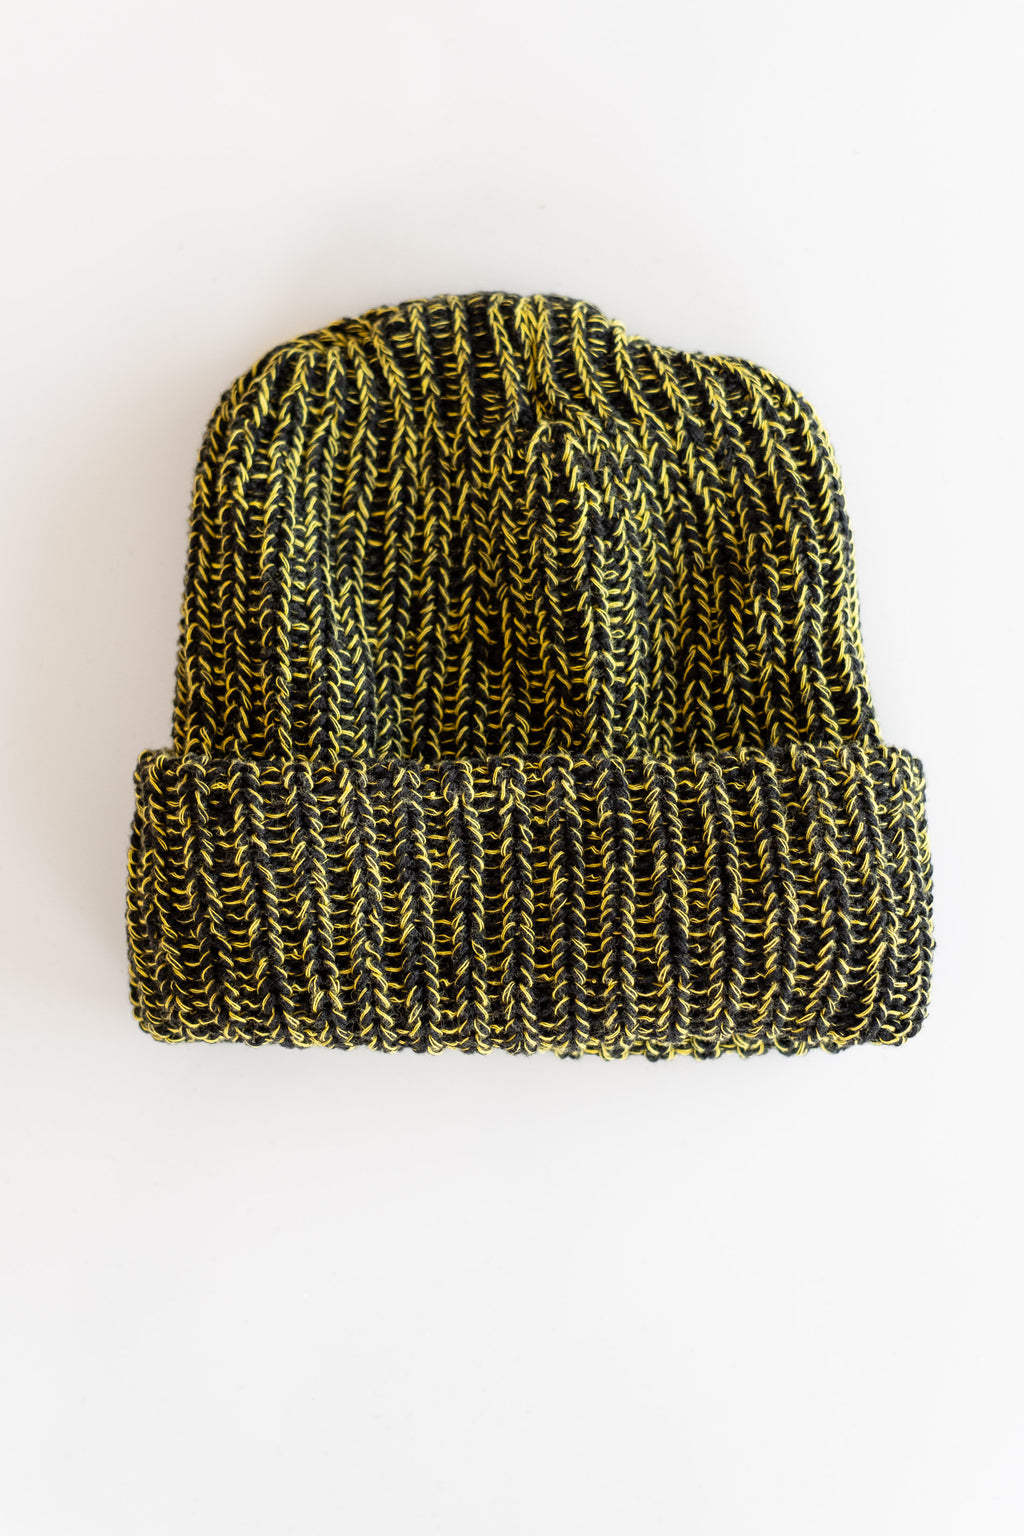 KNIT HAT IN BLACK AND LEMON MARL